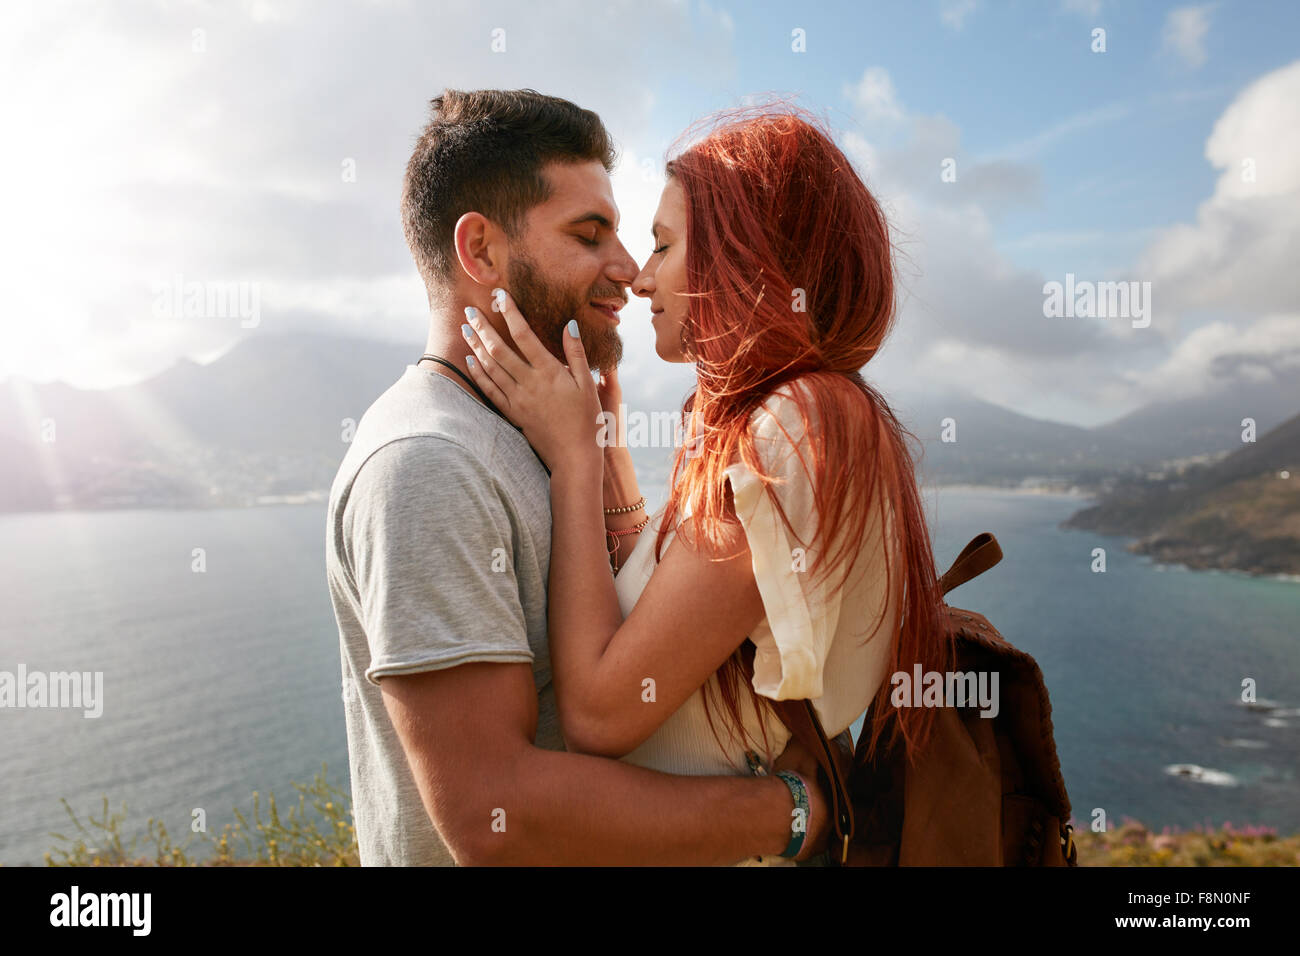 Portrait of young man and woman about to share a romantic kiss. Affectionate young couple enjoying their love in Stock Photo